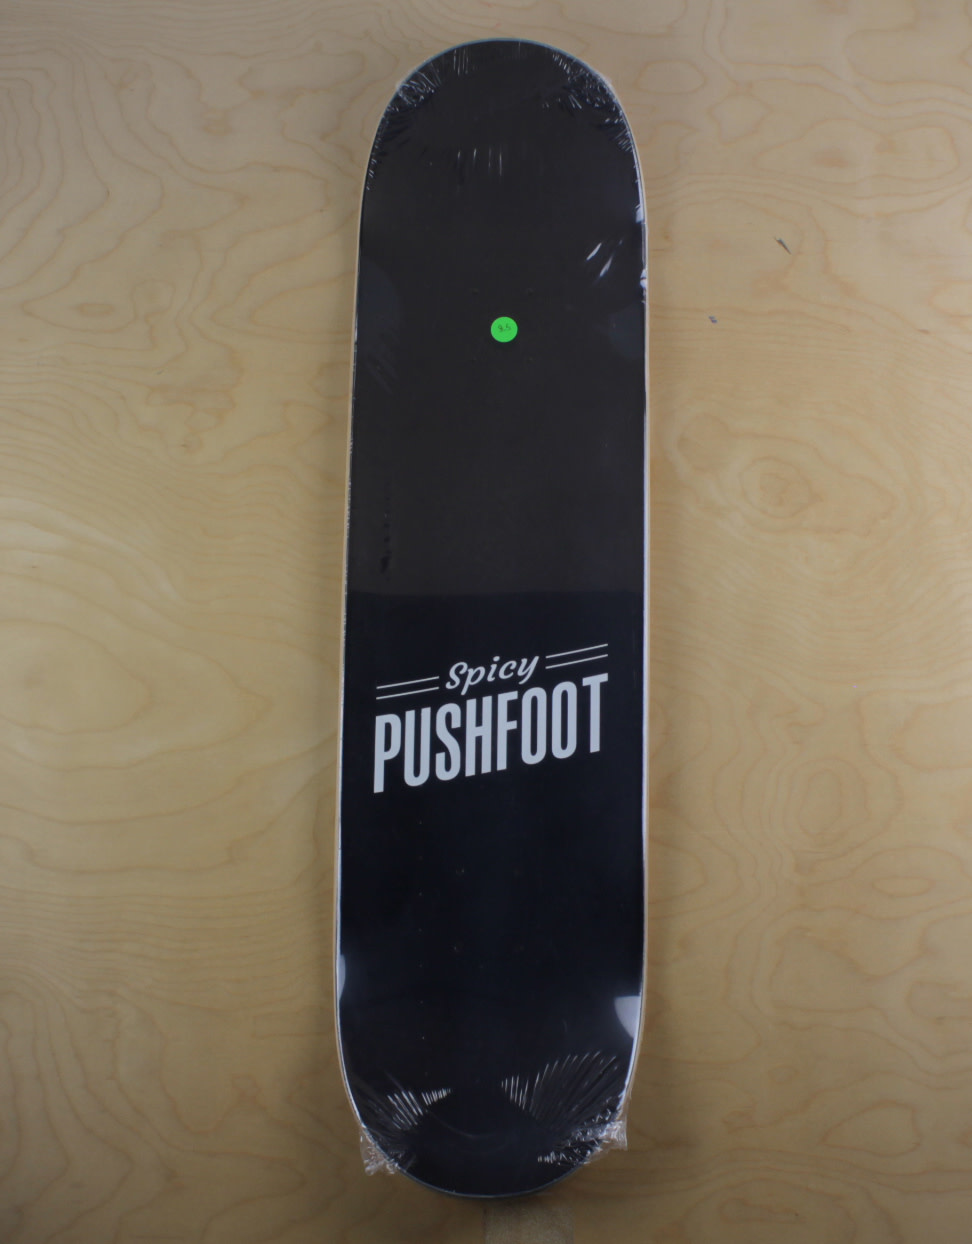 Pushfoot - 8.0 Stinson Spicy